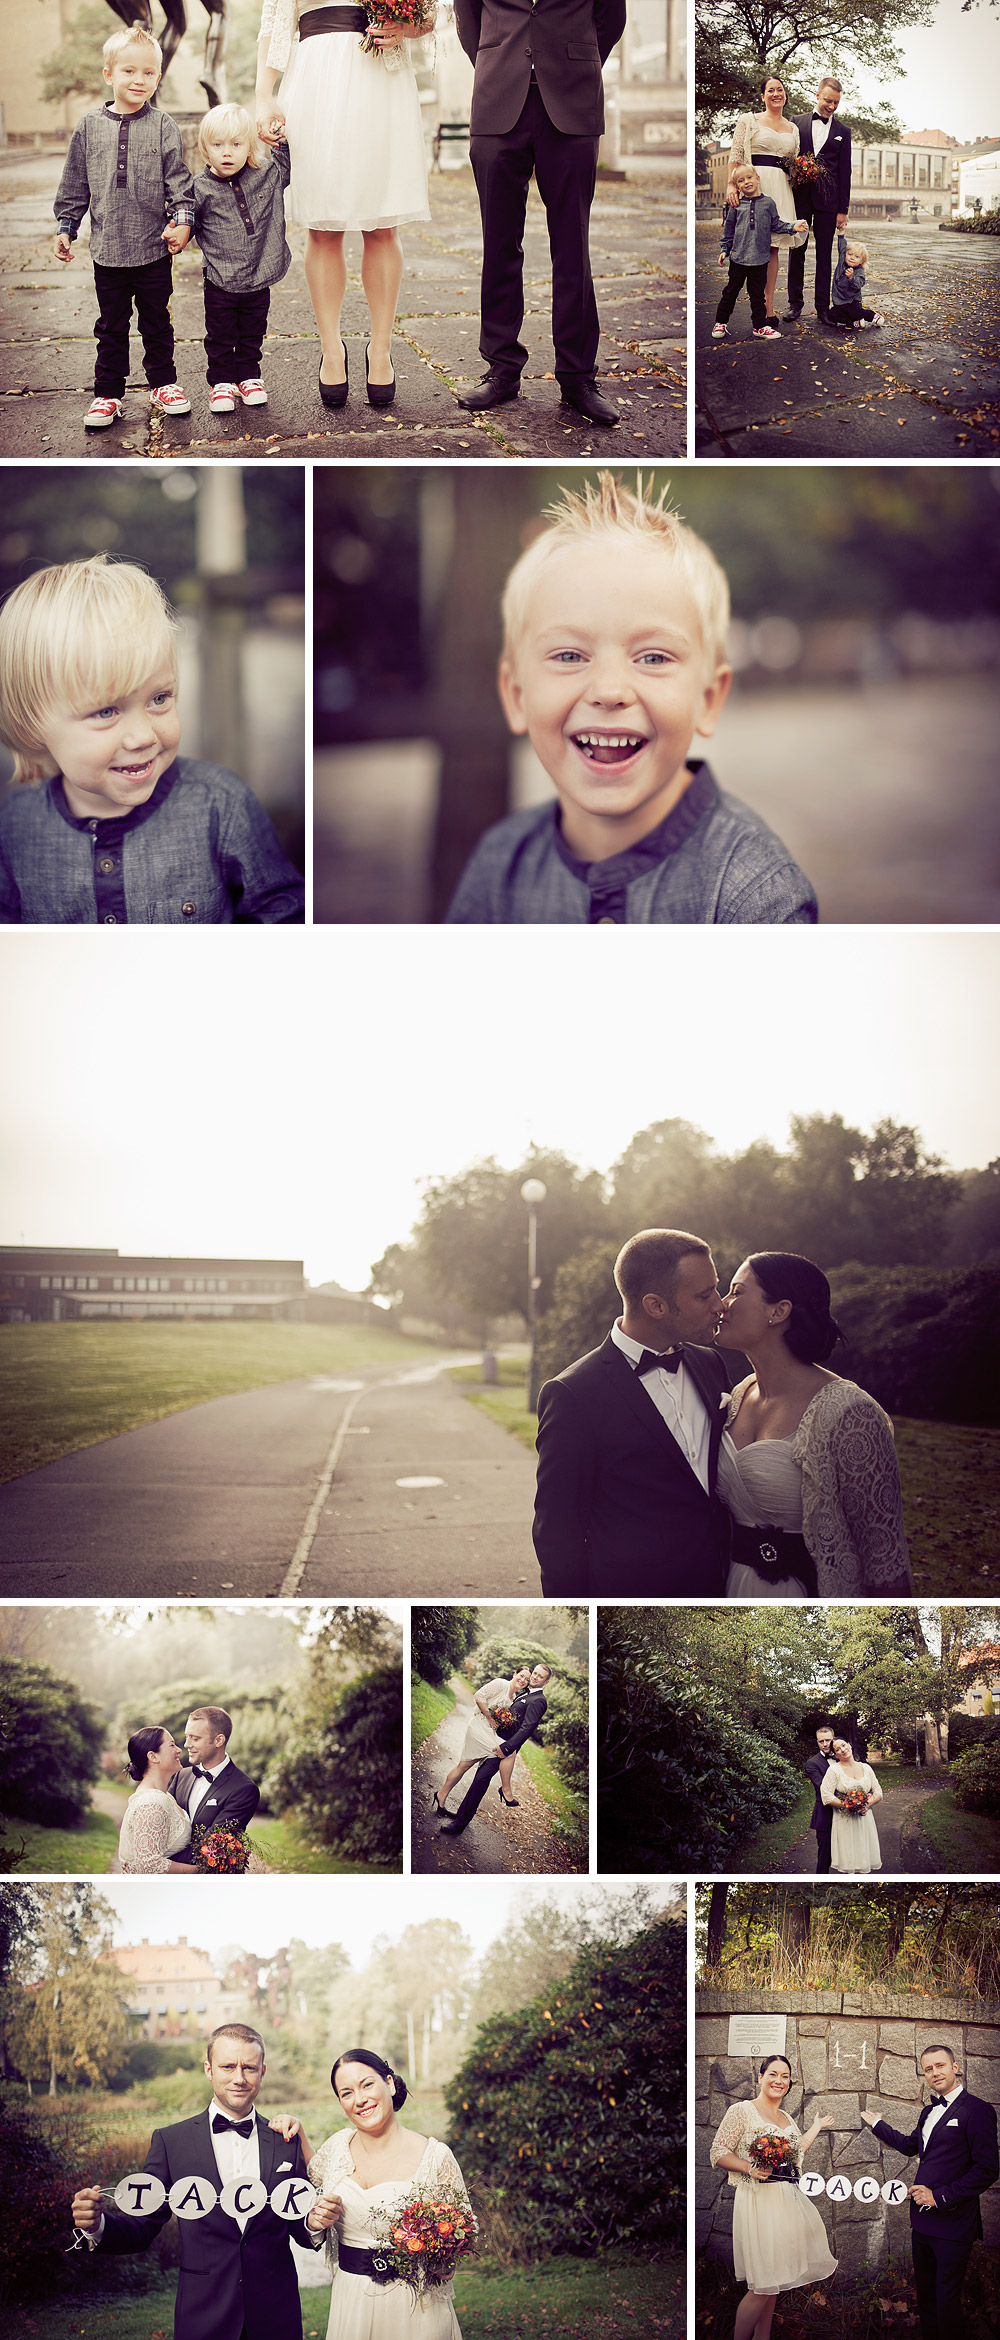 Jenny ♥ Peter. An autumn wedding in Gothenburg    weddings